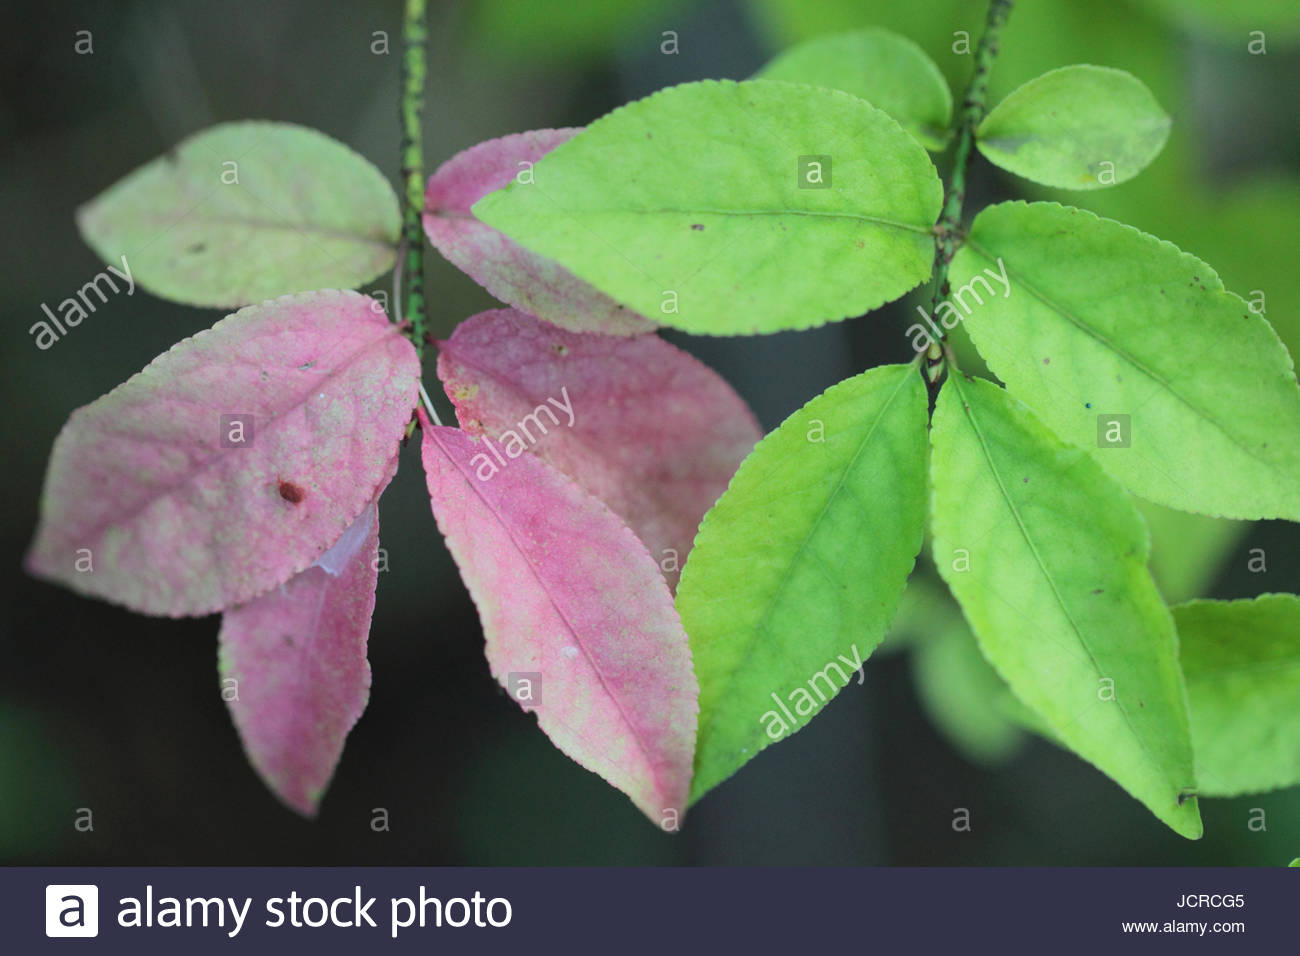 Close up of spindle, European spindle, or common spindle leaves, Euonymus europaeus, a species of flowering plant - Stock Image